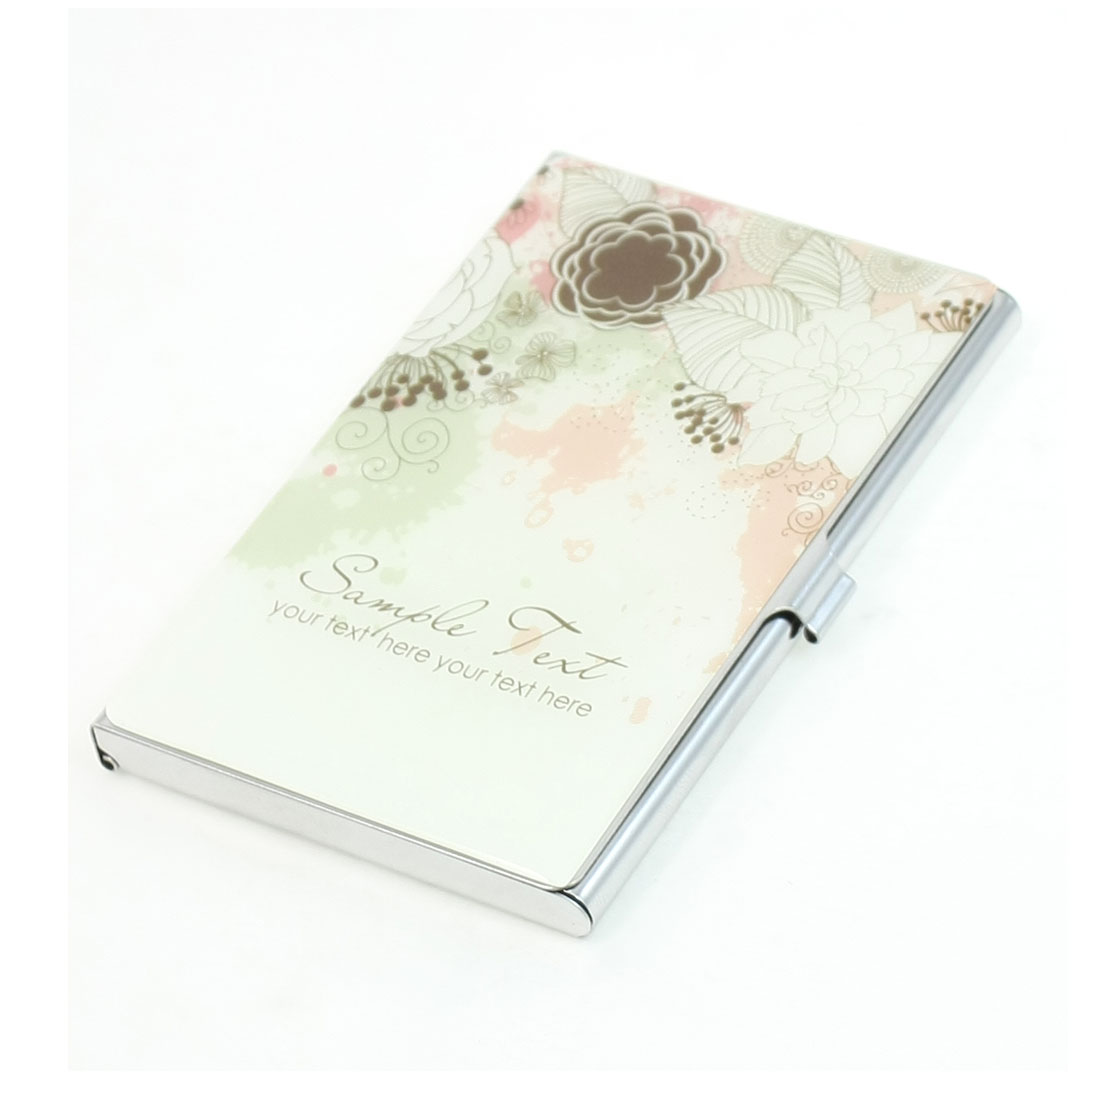 Colored Leaves Flower Print Rectangular Mirrored Metal ID Business Card Holder Organizer